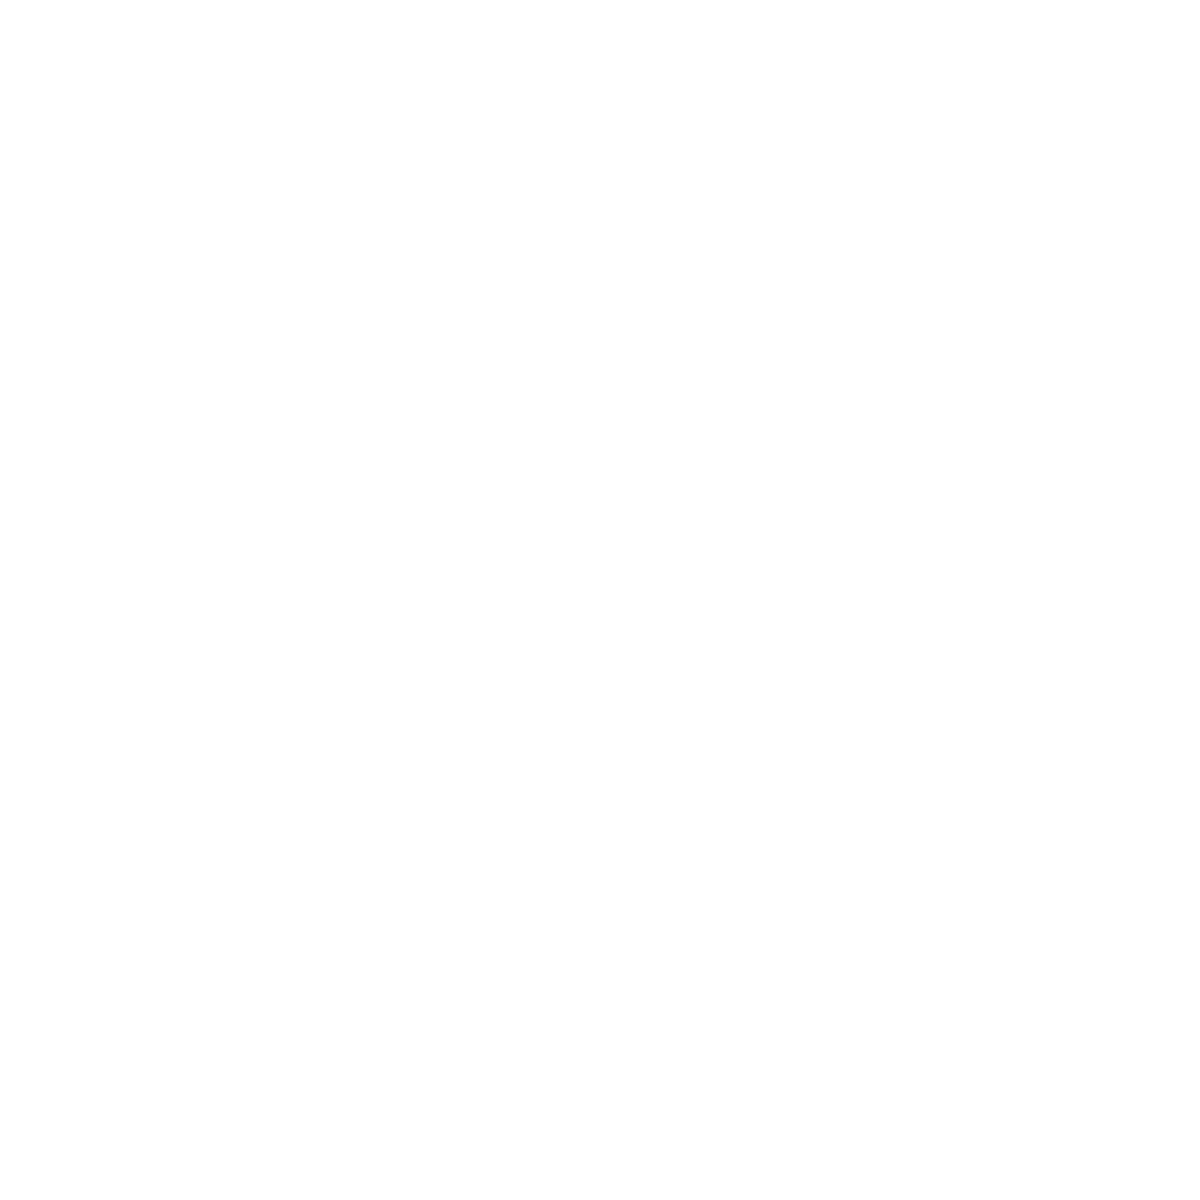 femforce logo